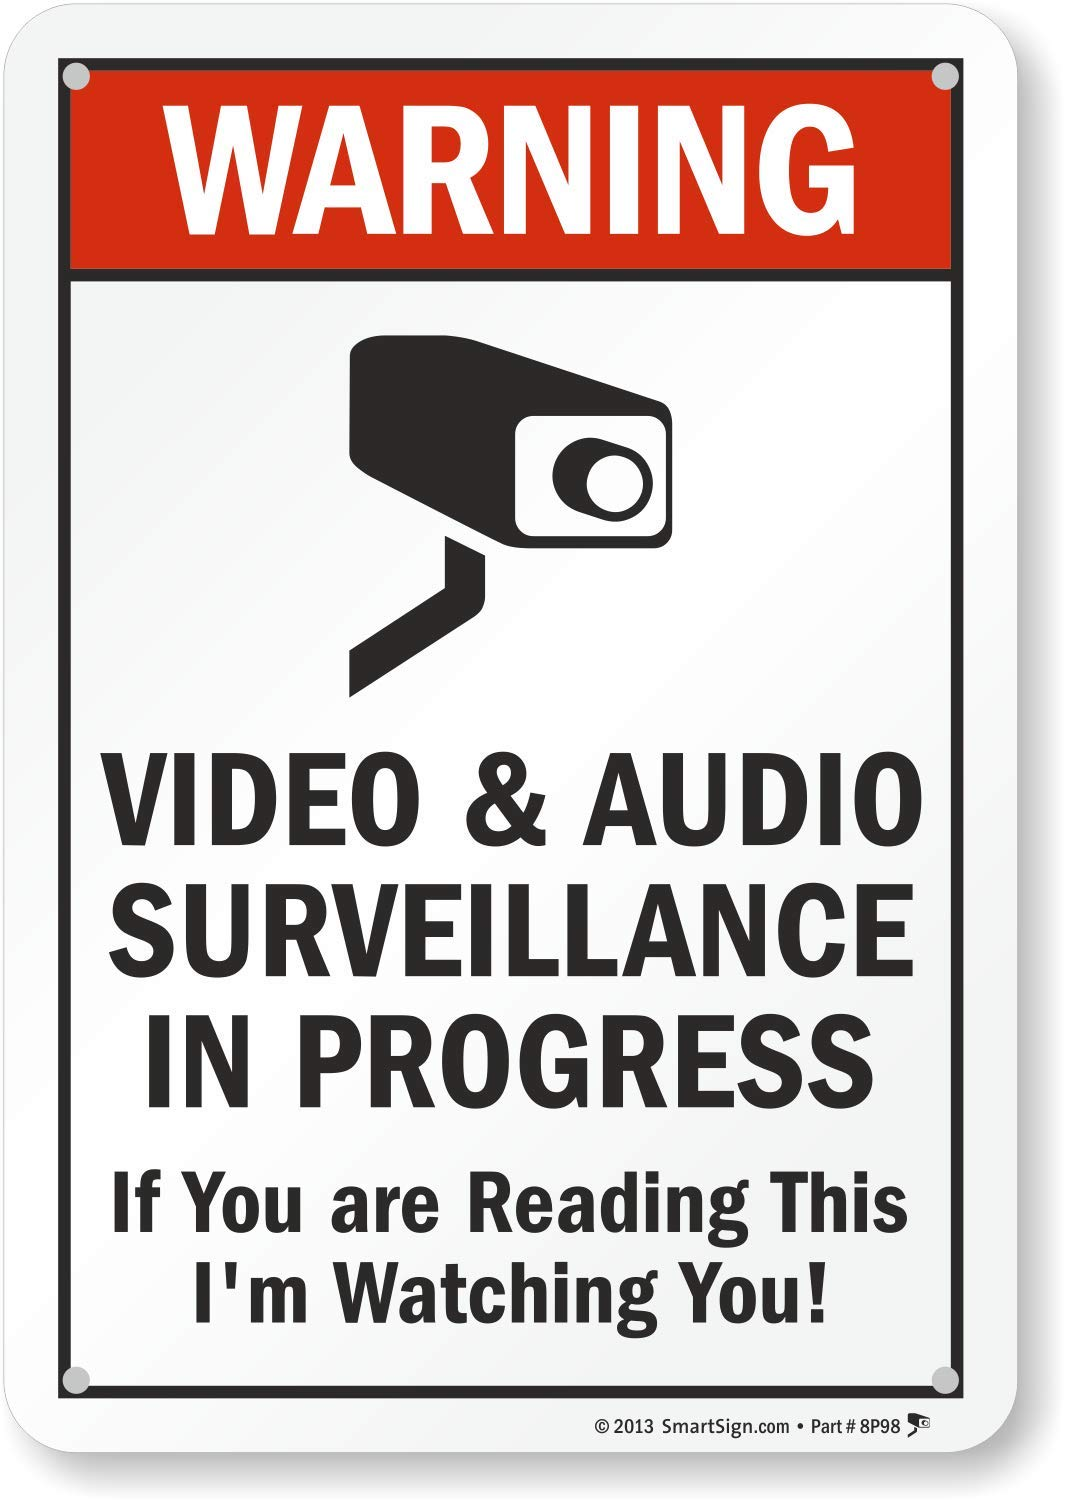 """SmartSign""""Warning - Video & Audio Surveillance in Progress, If You are Reading This I'm Watching You!"""" Sign   7"""" x 10"""" Aluminum"""